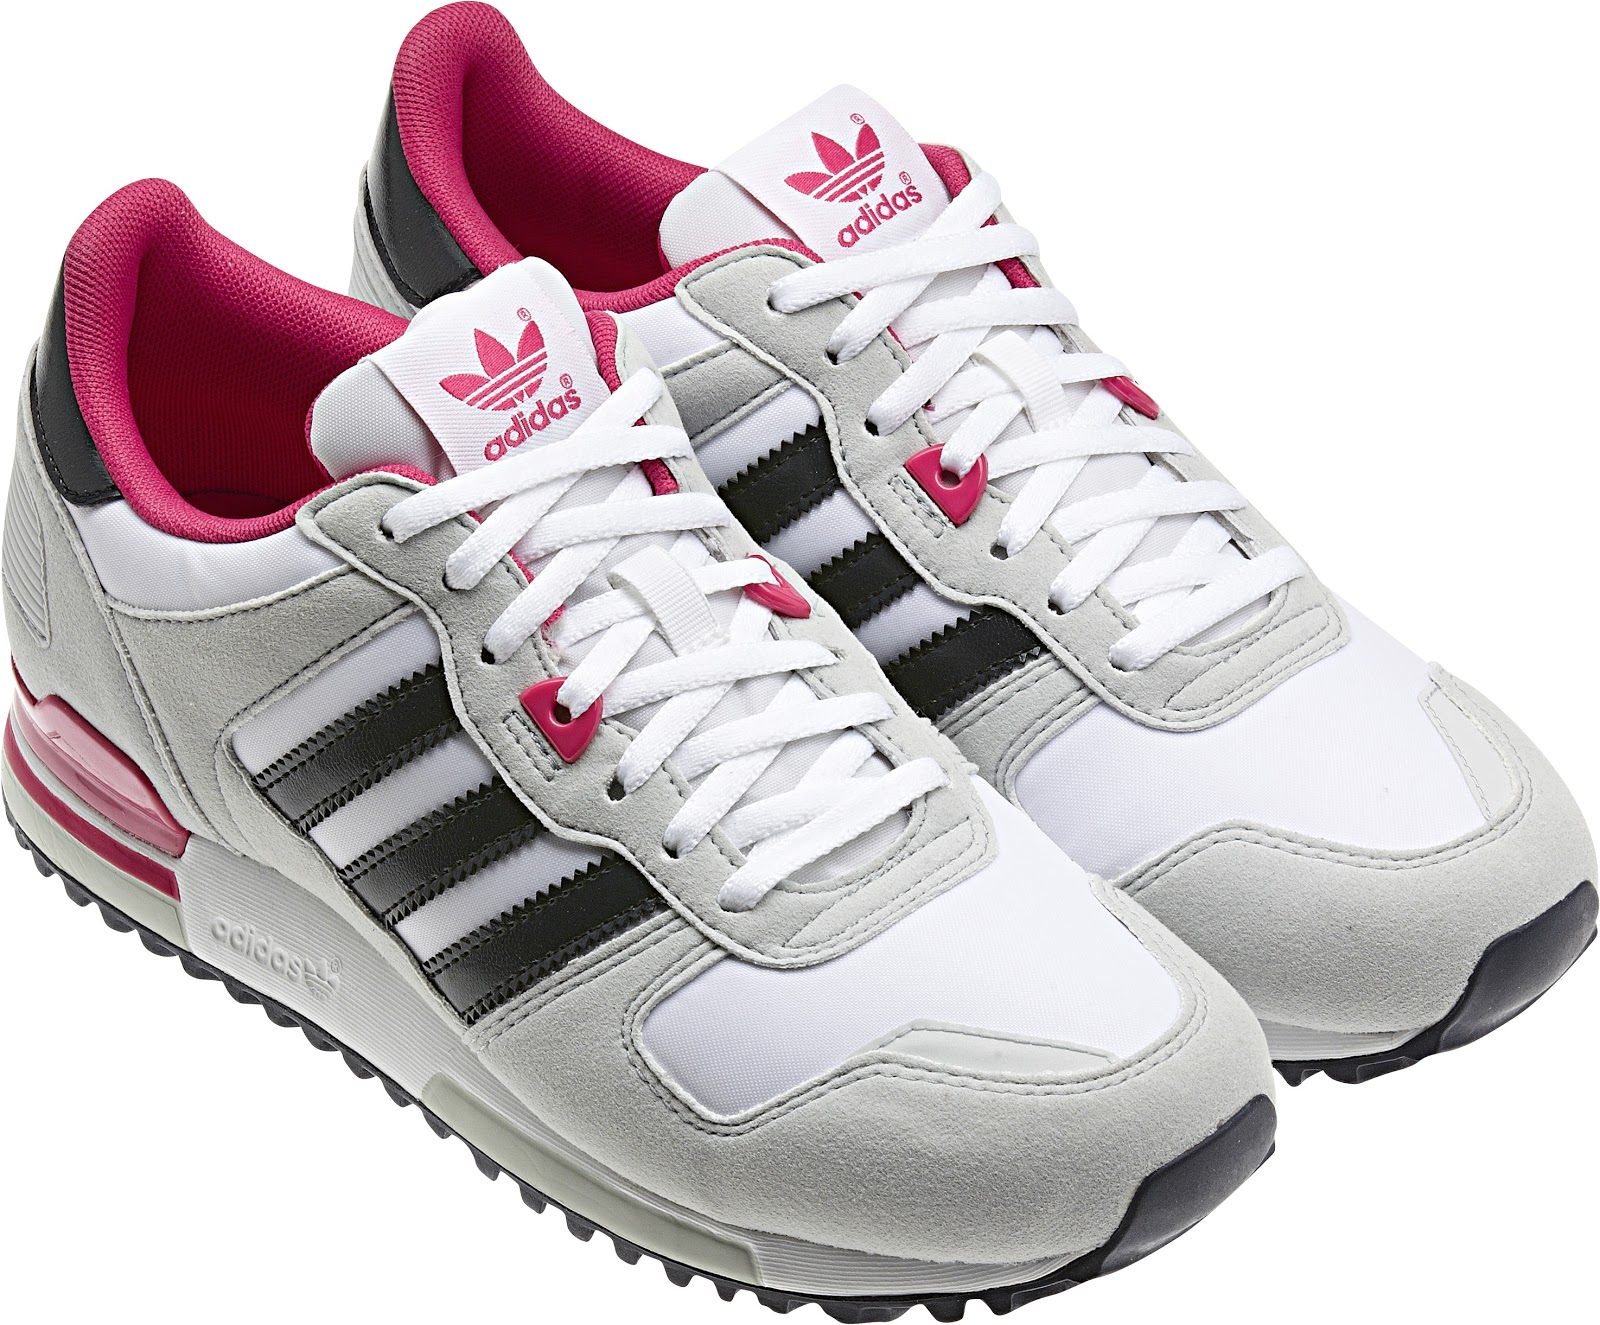 ZX Sneakers- Adidas Originals